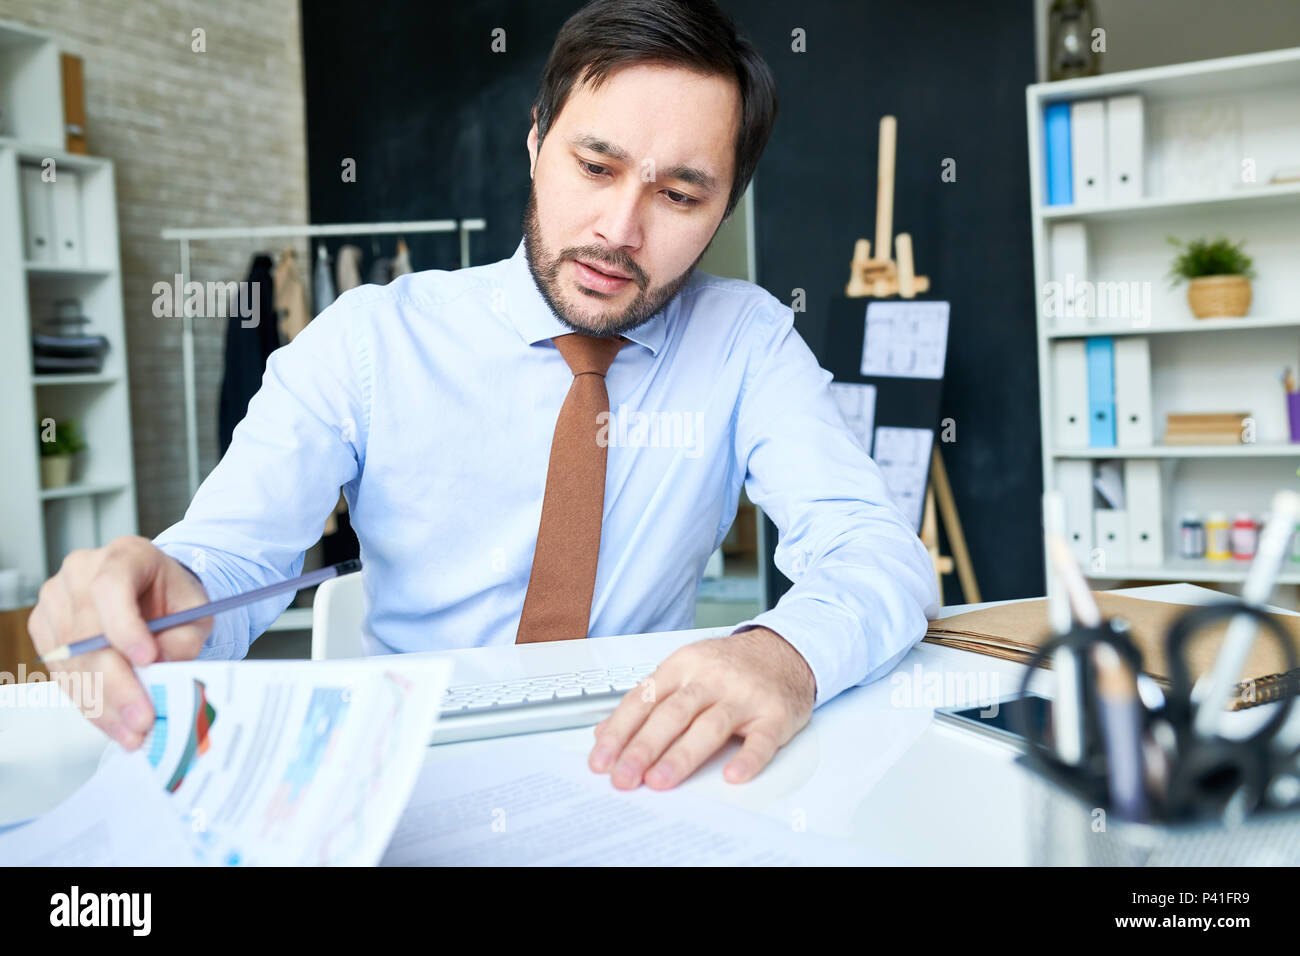 Businessman working with papers in office - Stock Image